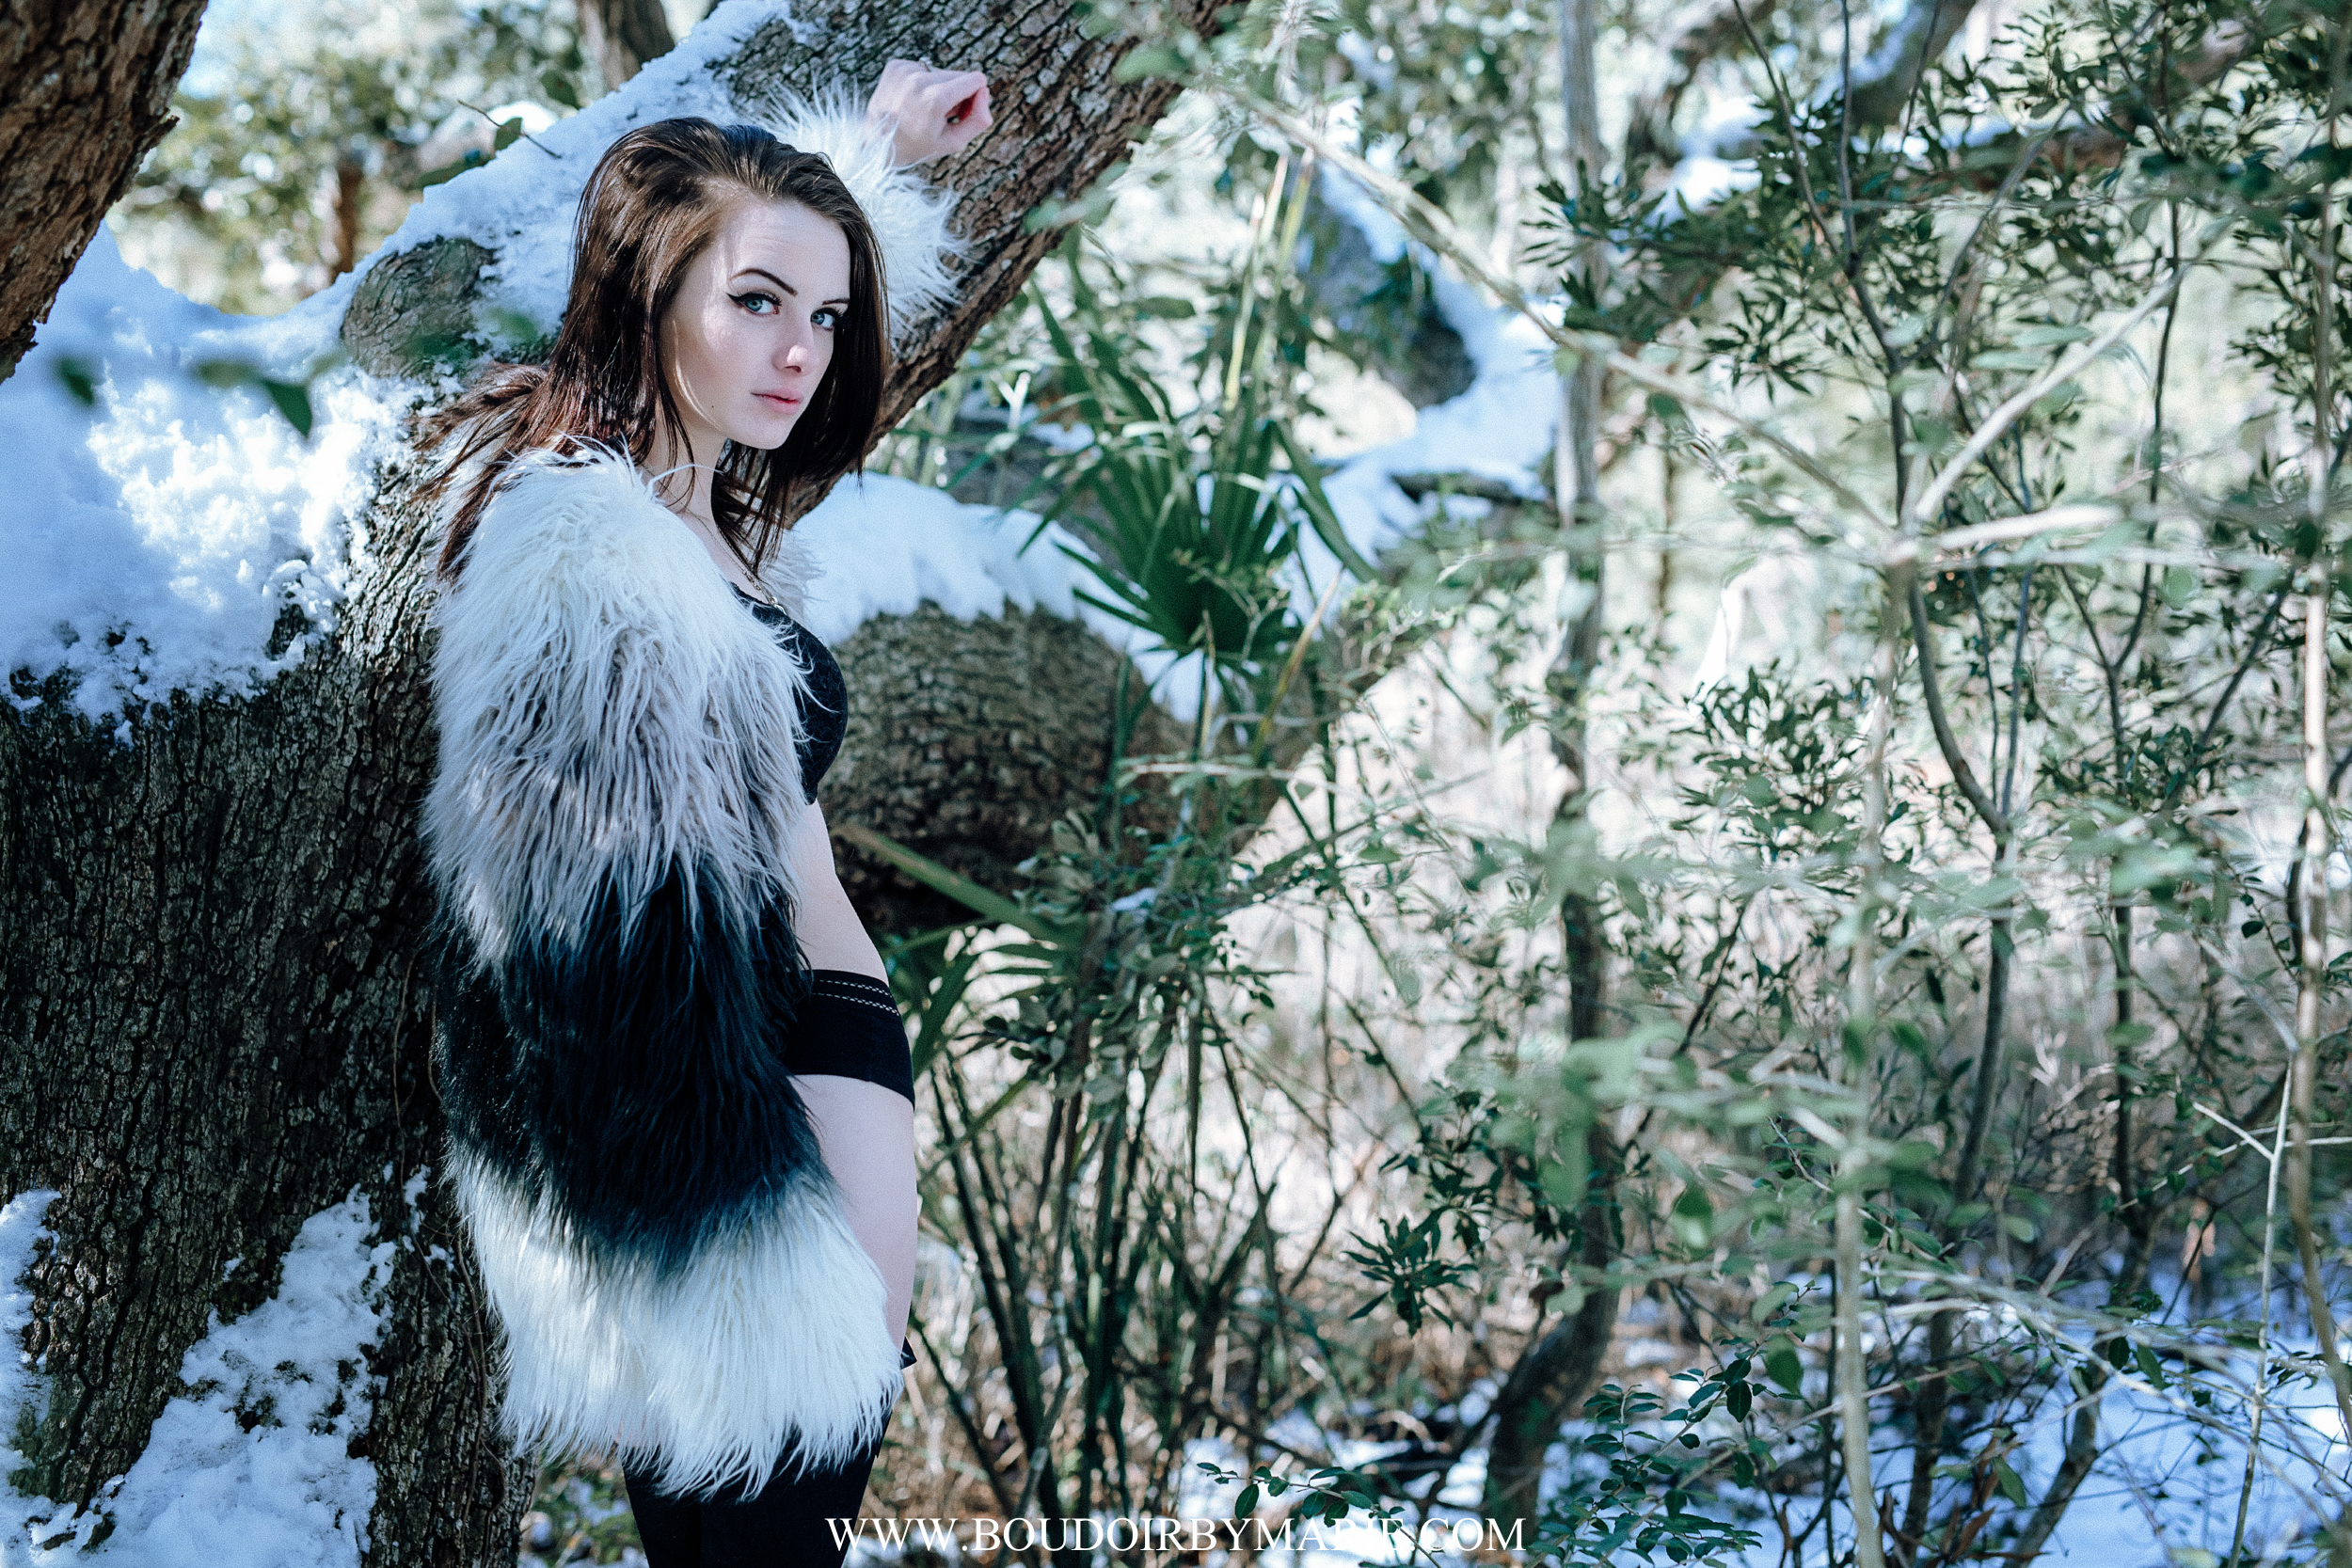 Brunette in high fashion faux fur coat photographed in the boudoir style outside in snow in Charleston, South Carolina.